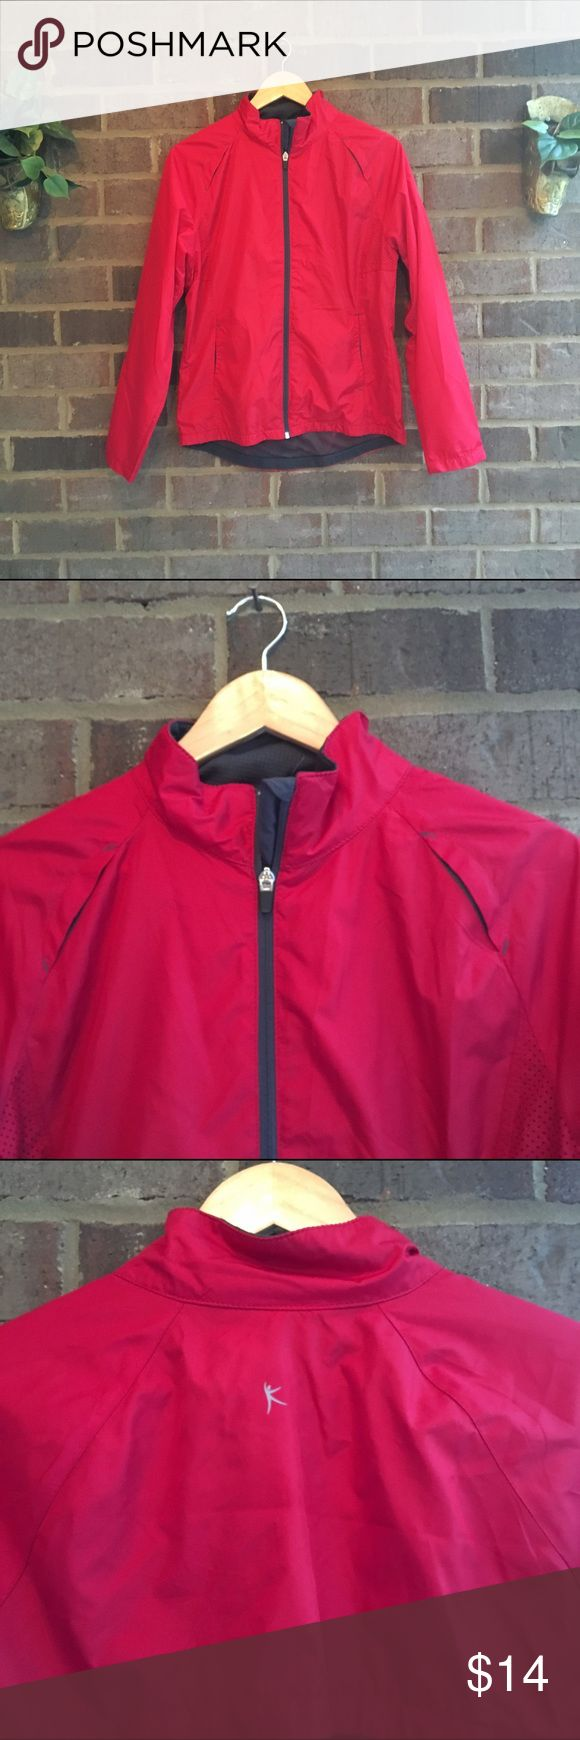 💋BOGO Danskin Red Waterproof Jacket This lightweight waterproof jacket is perfect for springtime runs. Has reflective stripes and a lightweight lining. Clean lines make for a streamlined look. 50038 🏹 Danskin Jackets & Coats